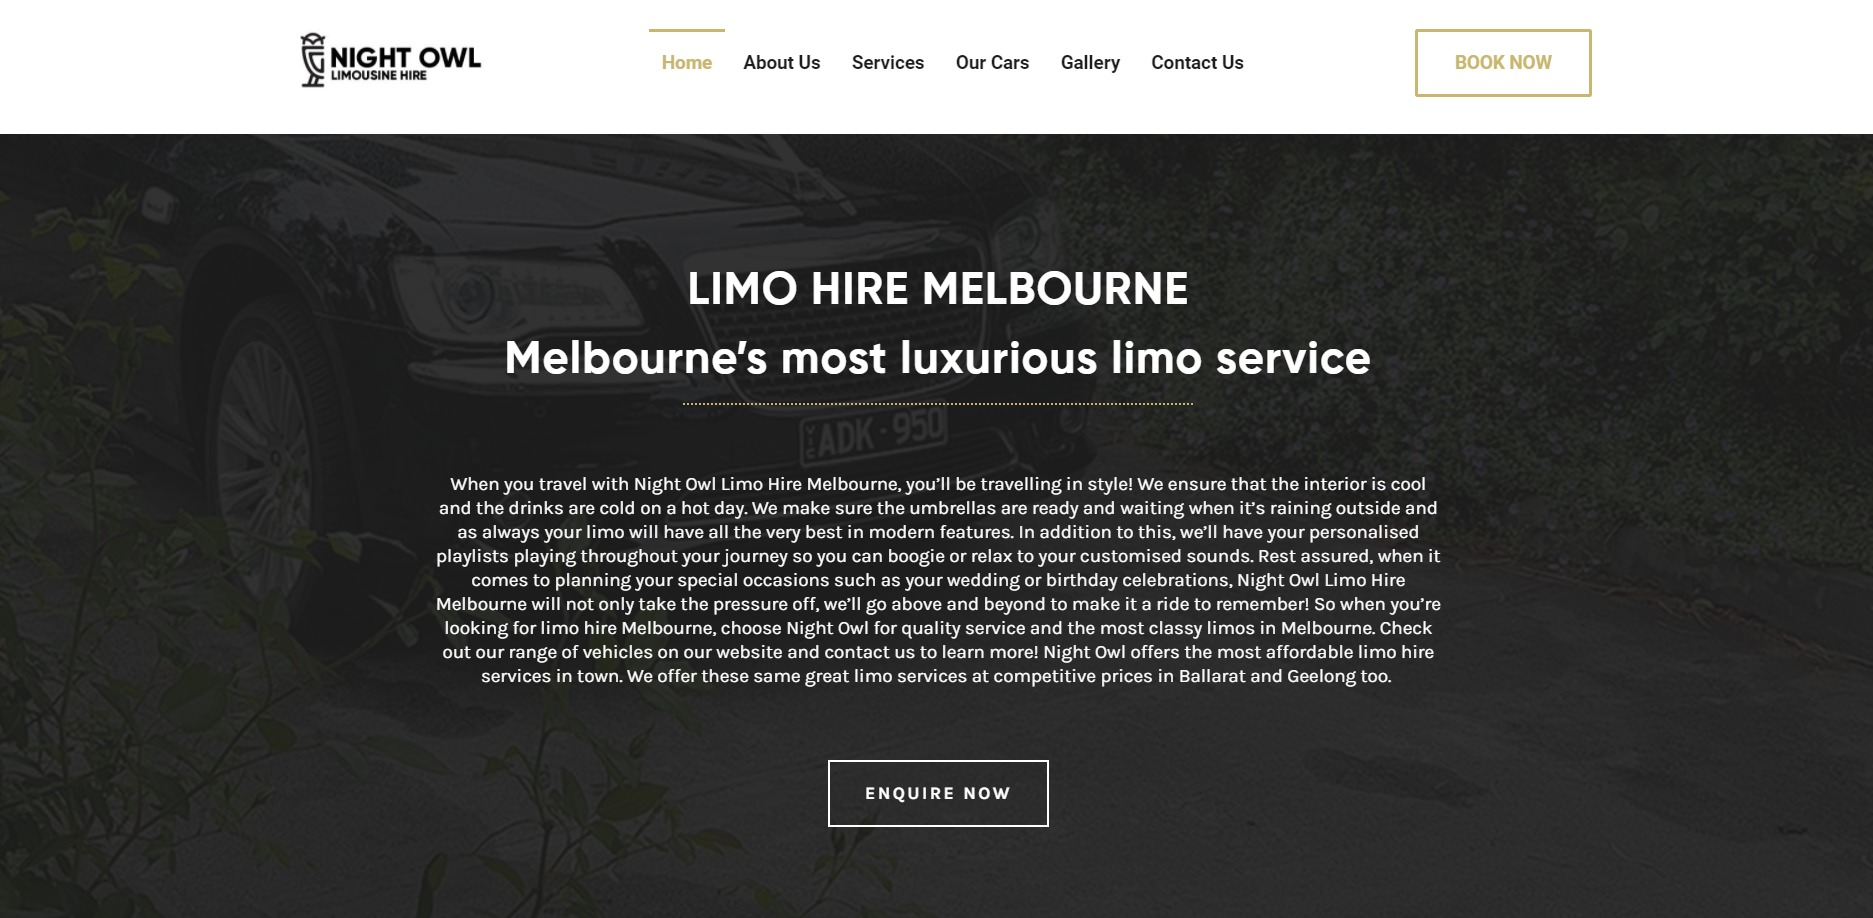 Night Owl Hire Melbourne